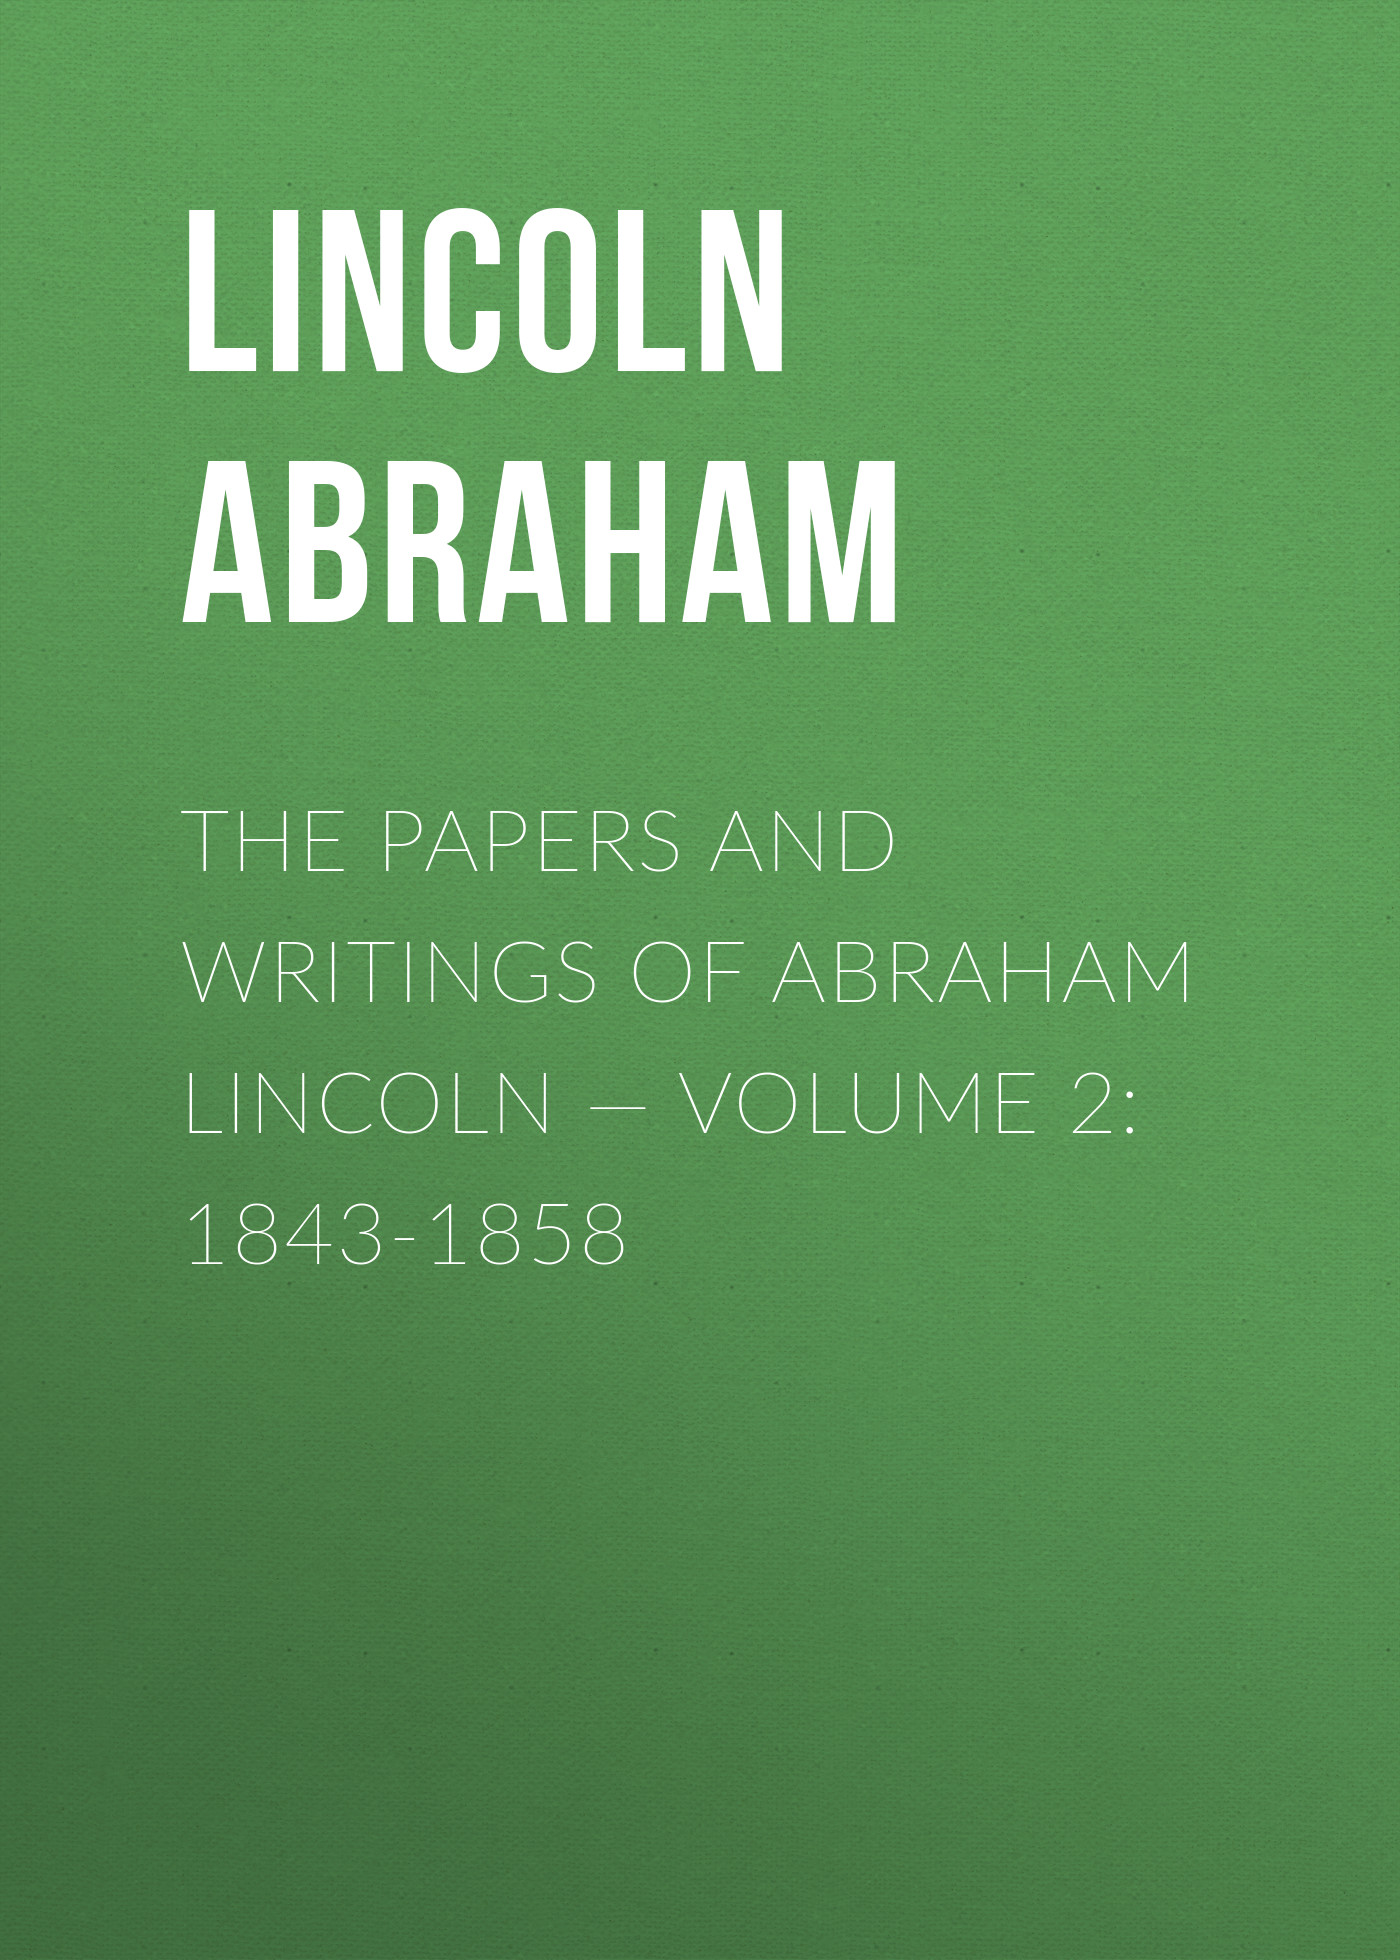 Lincoln Abraham The Papers And Writings Of Abraham Lincoln — Volume 2: 1843-1858 grahame smith s abraham lincoln vampire hunter